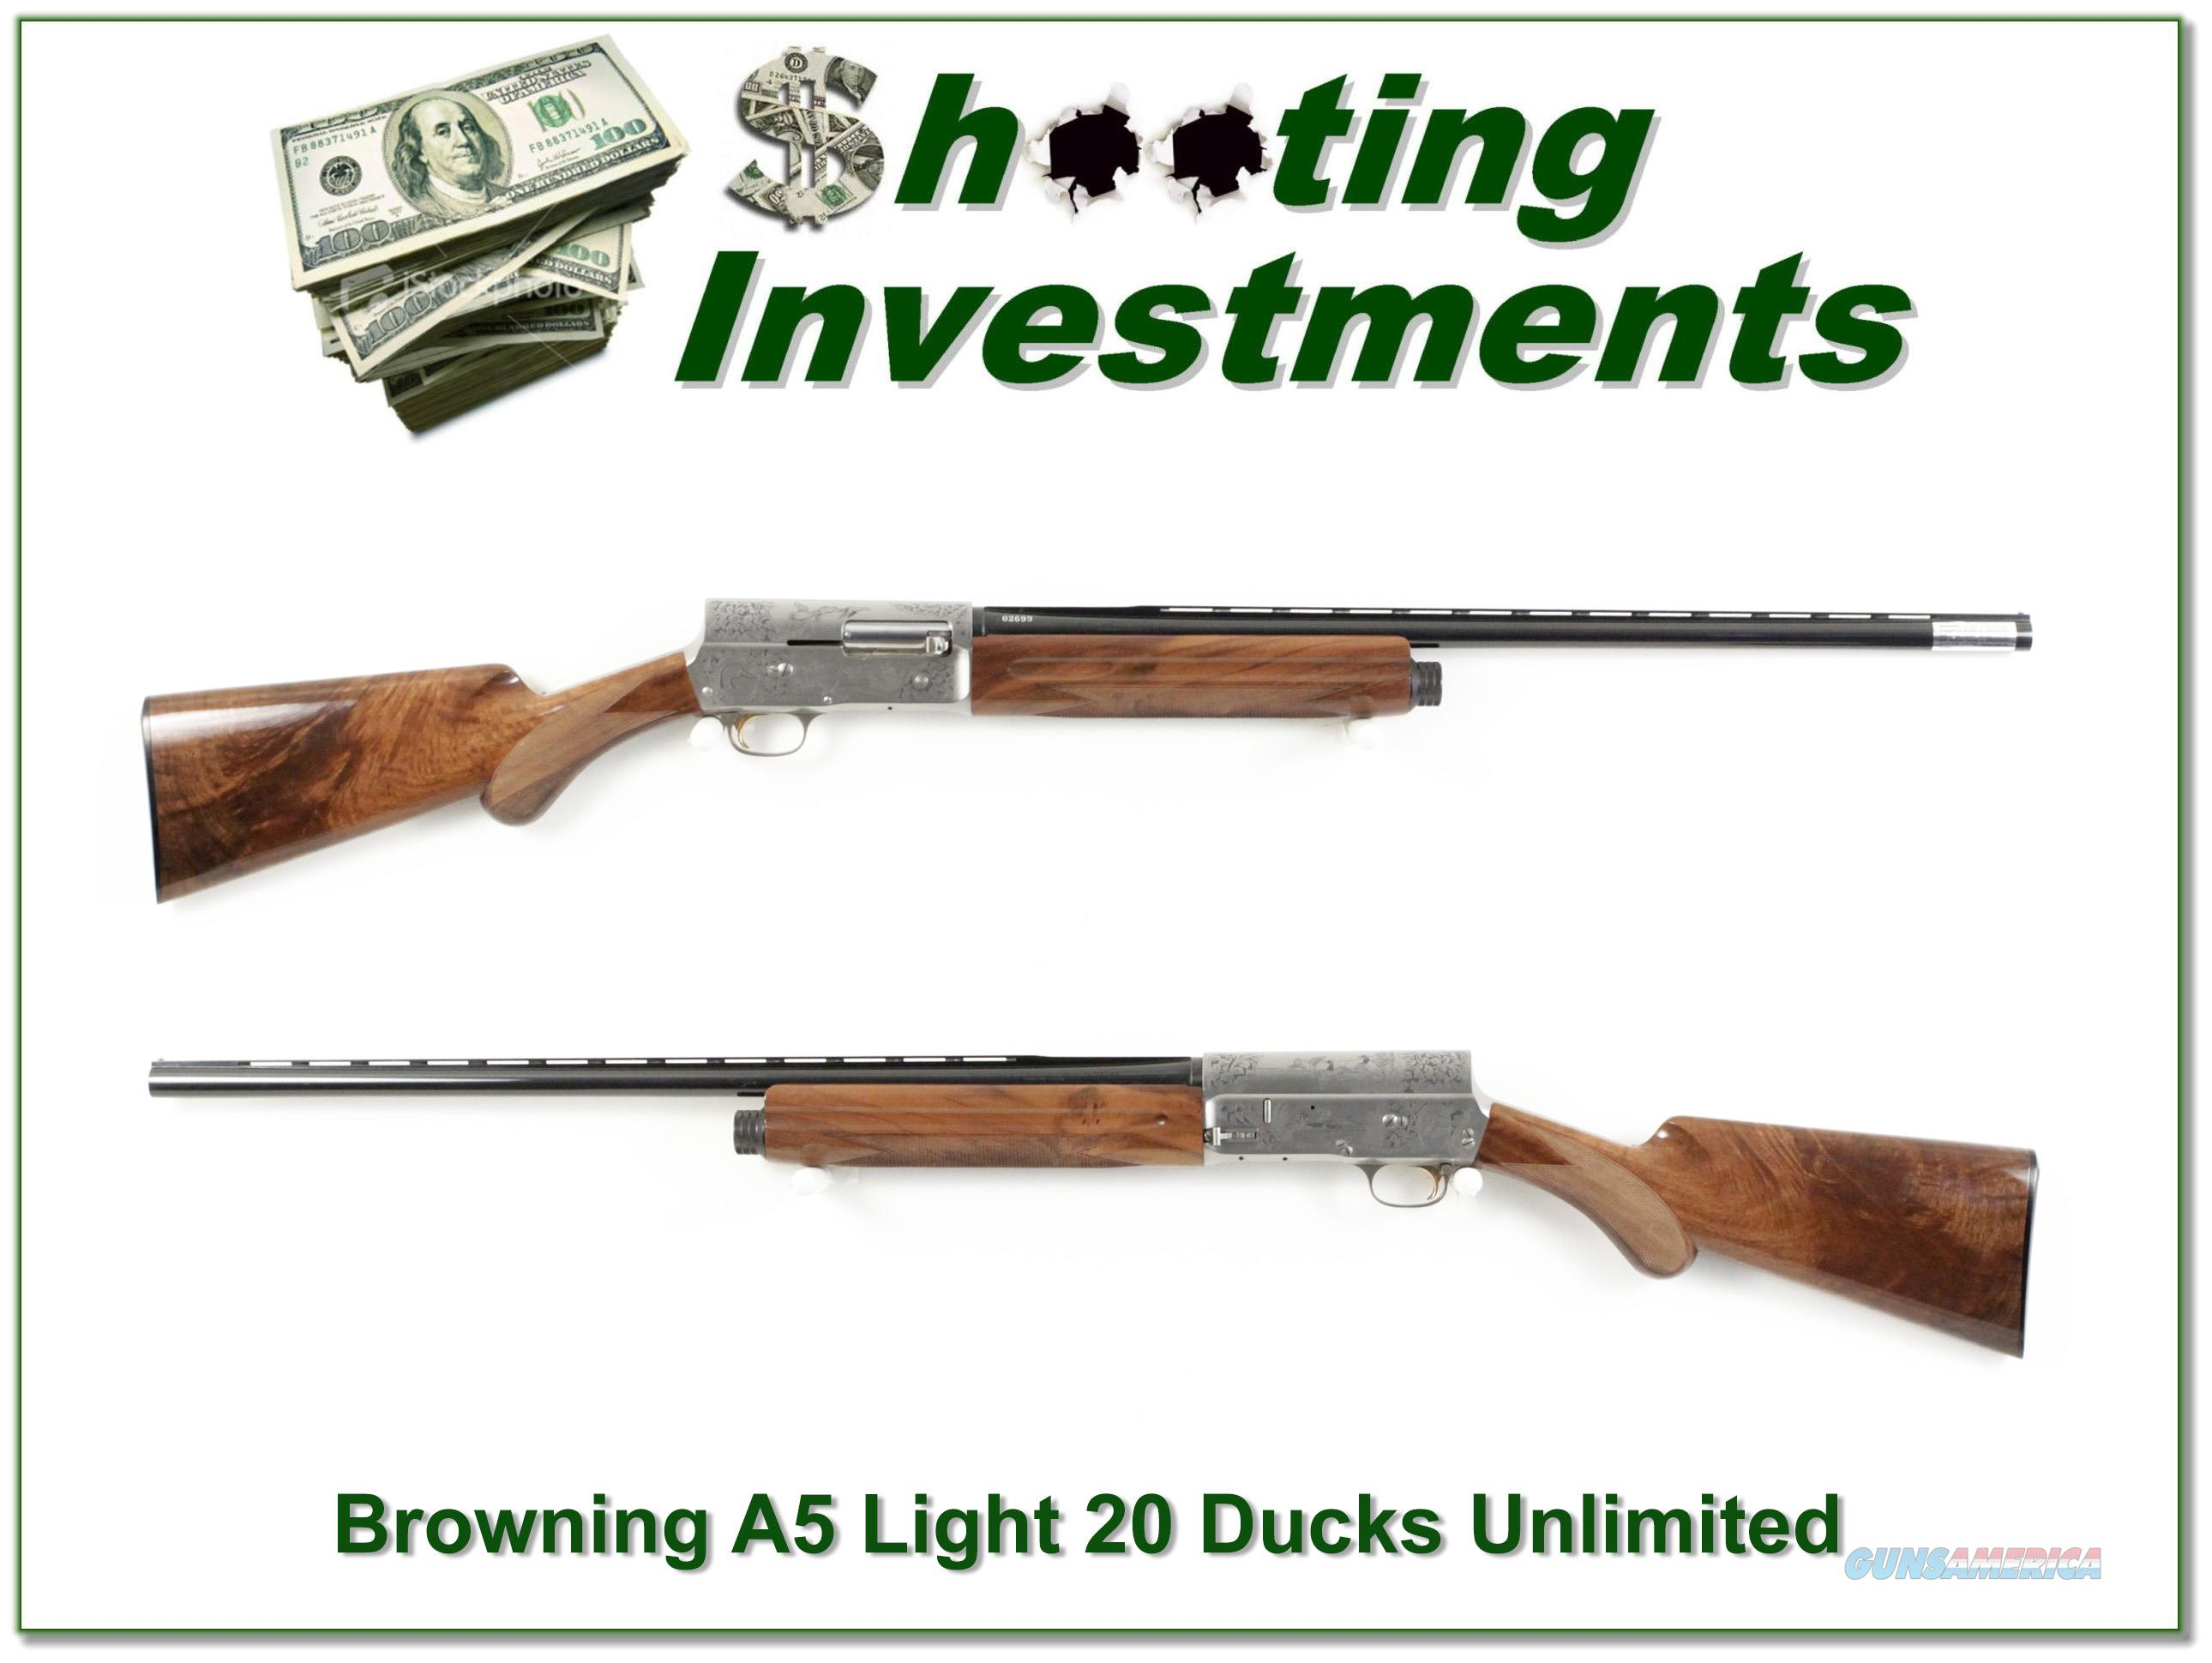 Browning A5 20 Gauge Ducks Unlimited unfired XX Wood!  Guns > Shotguns > Browning Shotguns > Autoloaders > Hunting